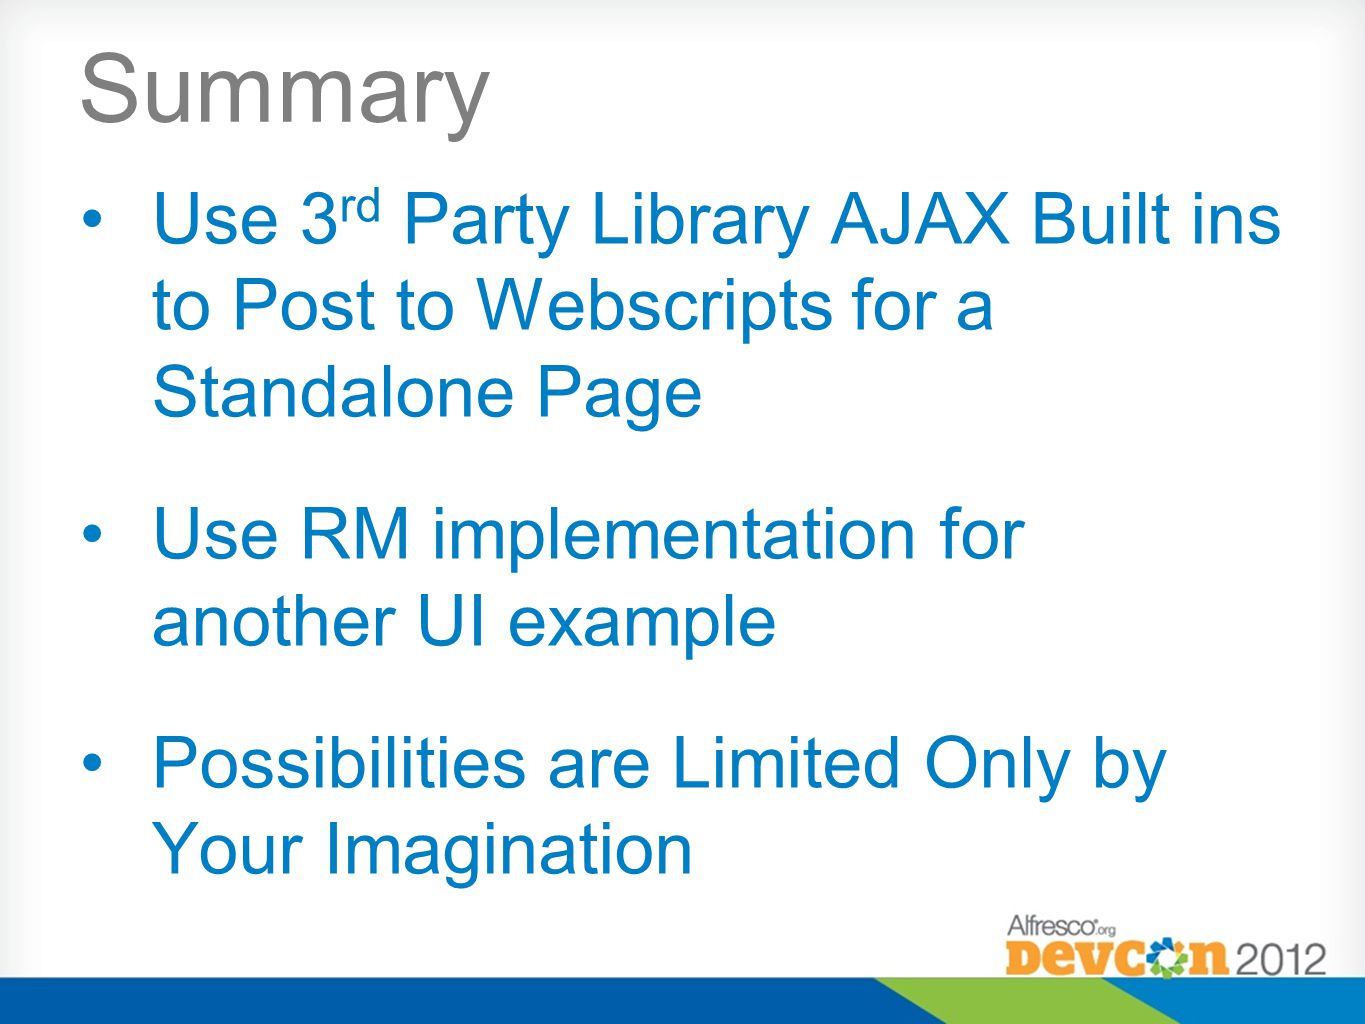 Summary Use 3 rd Party Library AJAX Built ins to Post to Webscripts for a Standalone Page Use RM implementation for another UI example Possibilities are Limited Only by Your Imagination